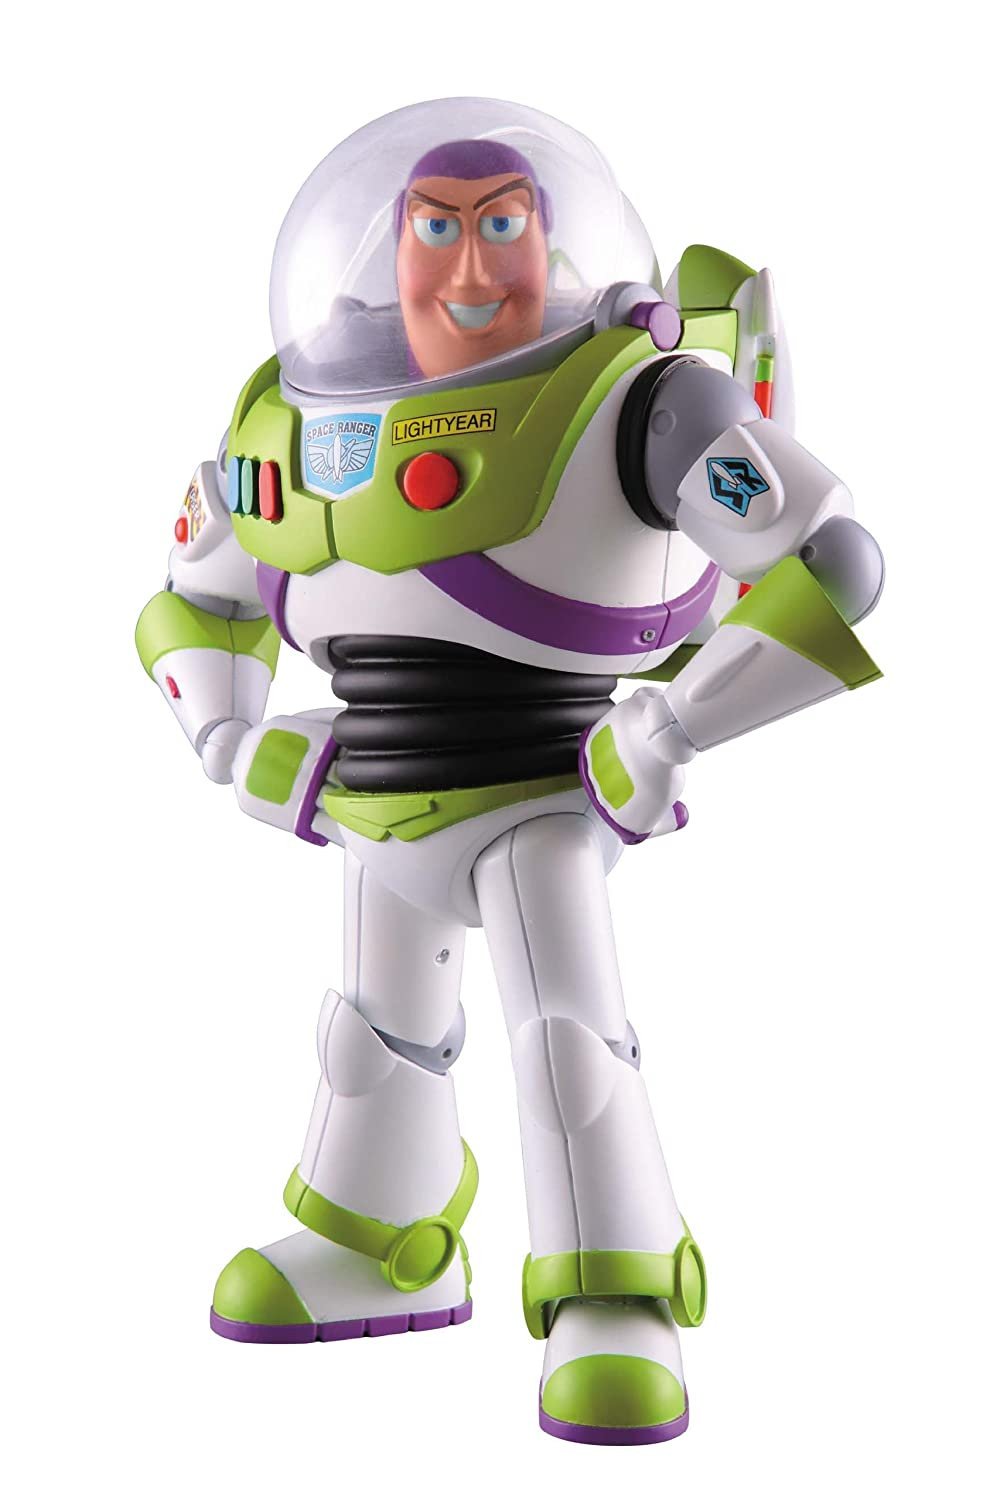 VINYL COLLECTIBLE DOLLS BUZZ LIGHTYEAR ver.2.0 Toy Story